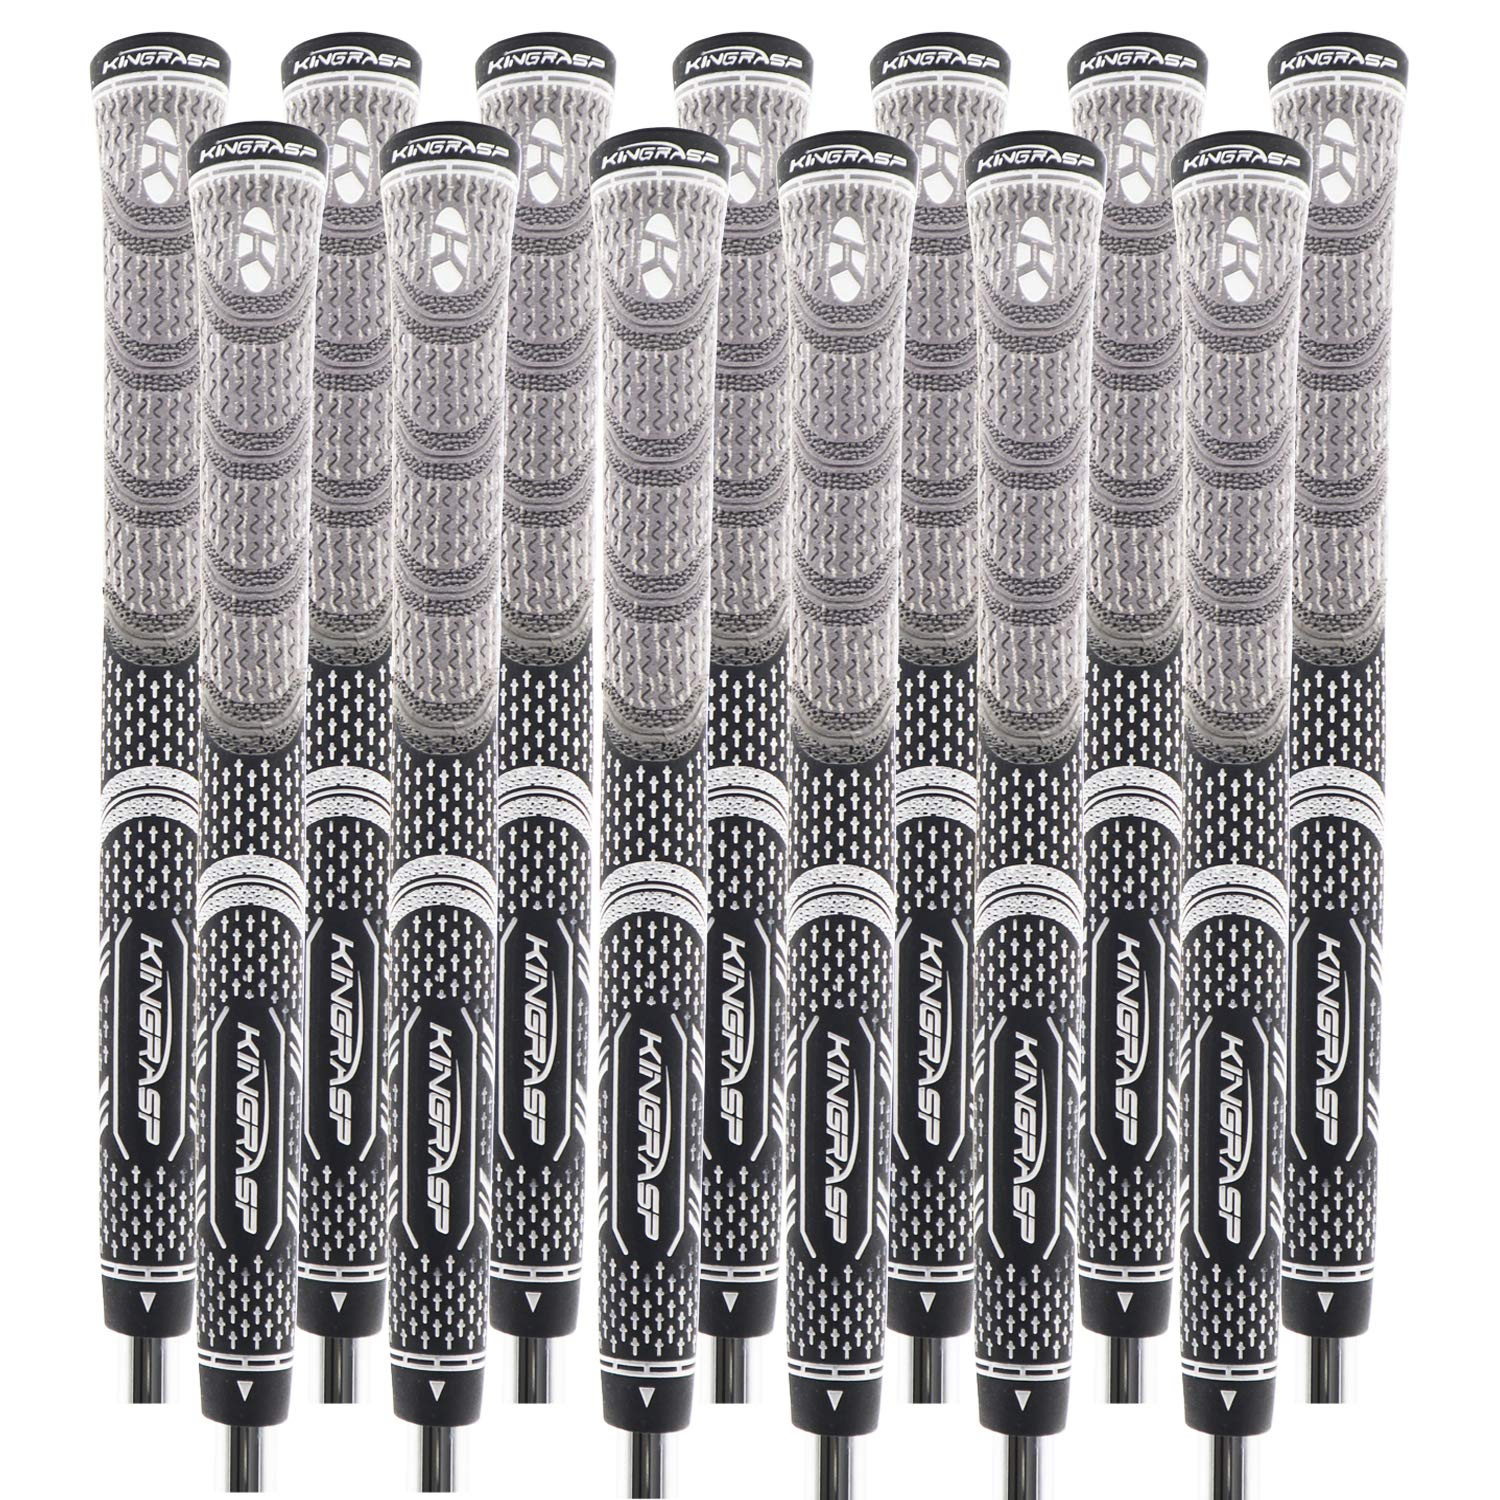 KINGRASP Multi Compound Golf Grips Set of 13 Golf Grip Standard midsize Size - All Weather Rubber Golf Club Grips Ideal for Clubs Wedges Drivers Irons Hybrids (Gray/Black, Standard)